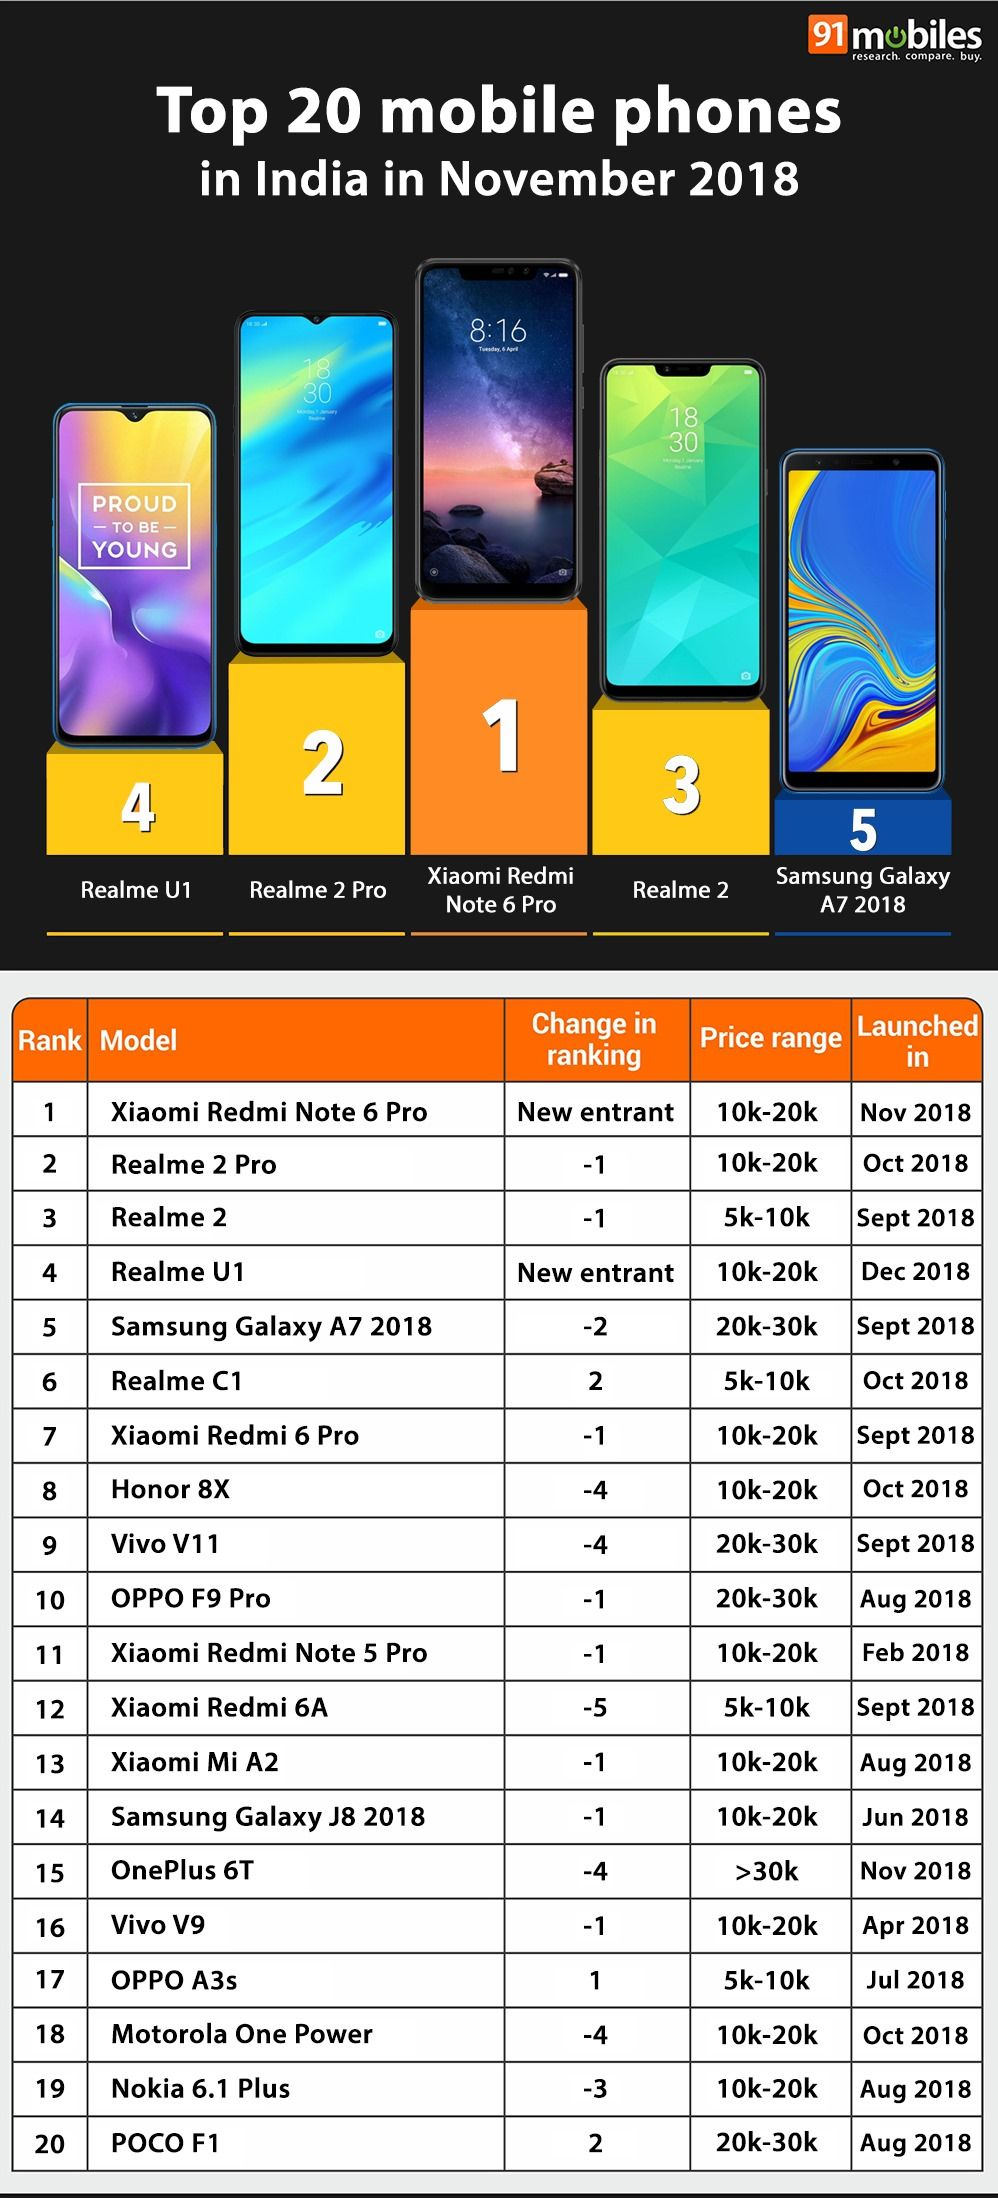 b775ed0be Top 20 mobile phones in India in November 2018  91mobiles insights ...